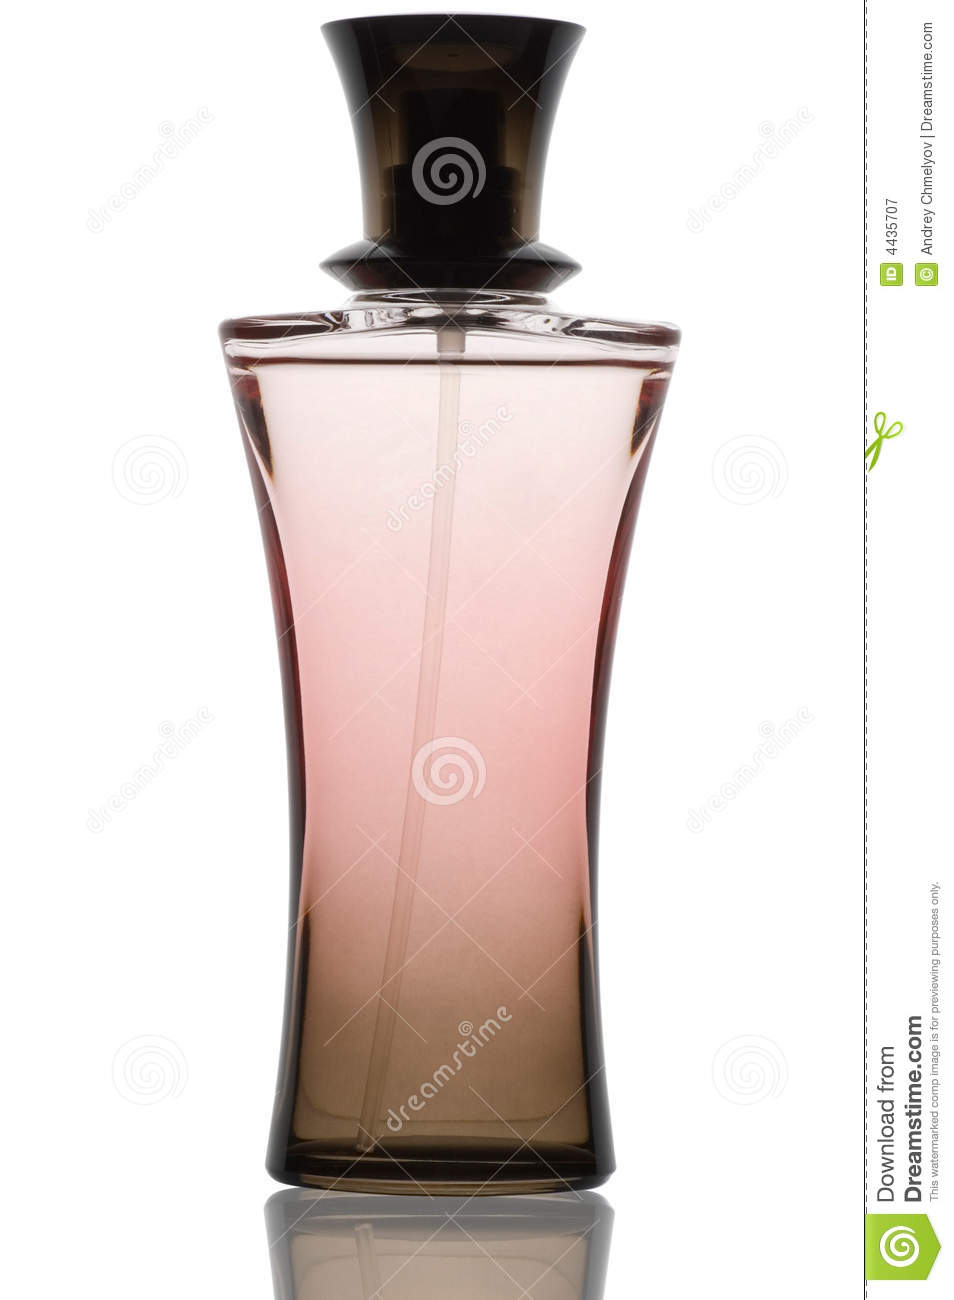 Top Bouteille De Parfum Rose Photographie stock libre de droits  CO44